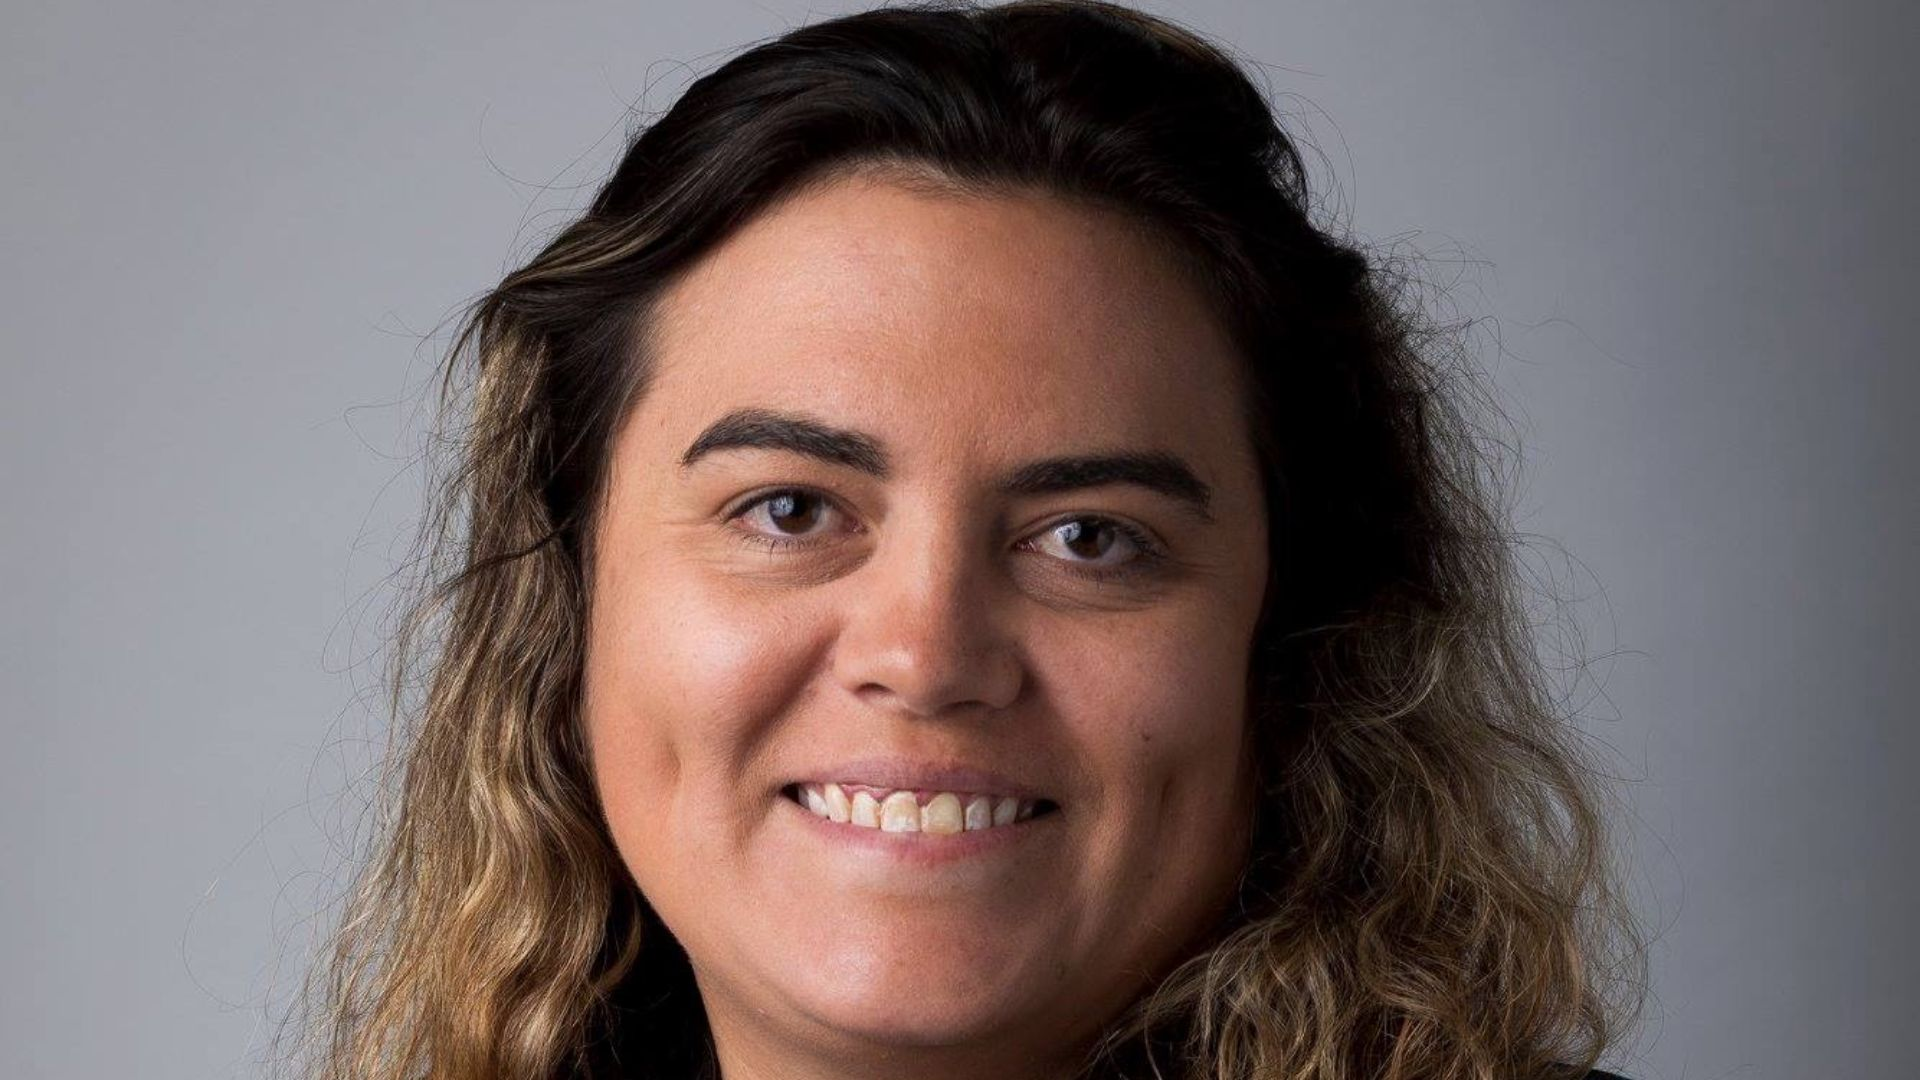 Recent graduate named a finalist in national Dreamtime Awards